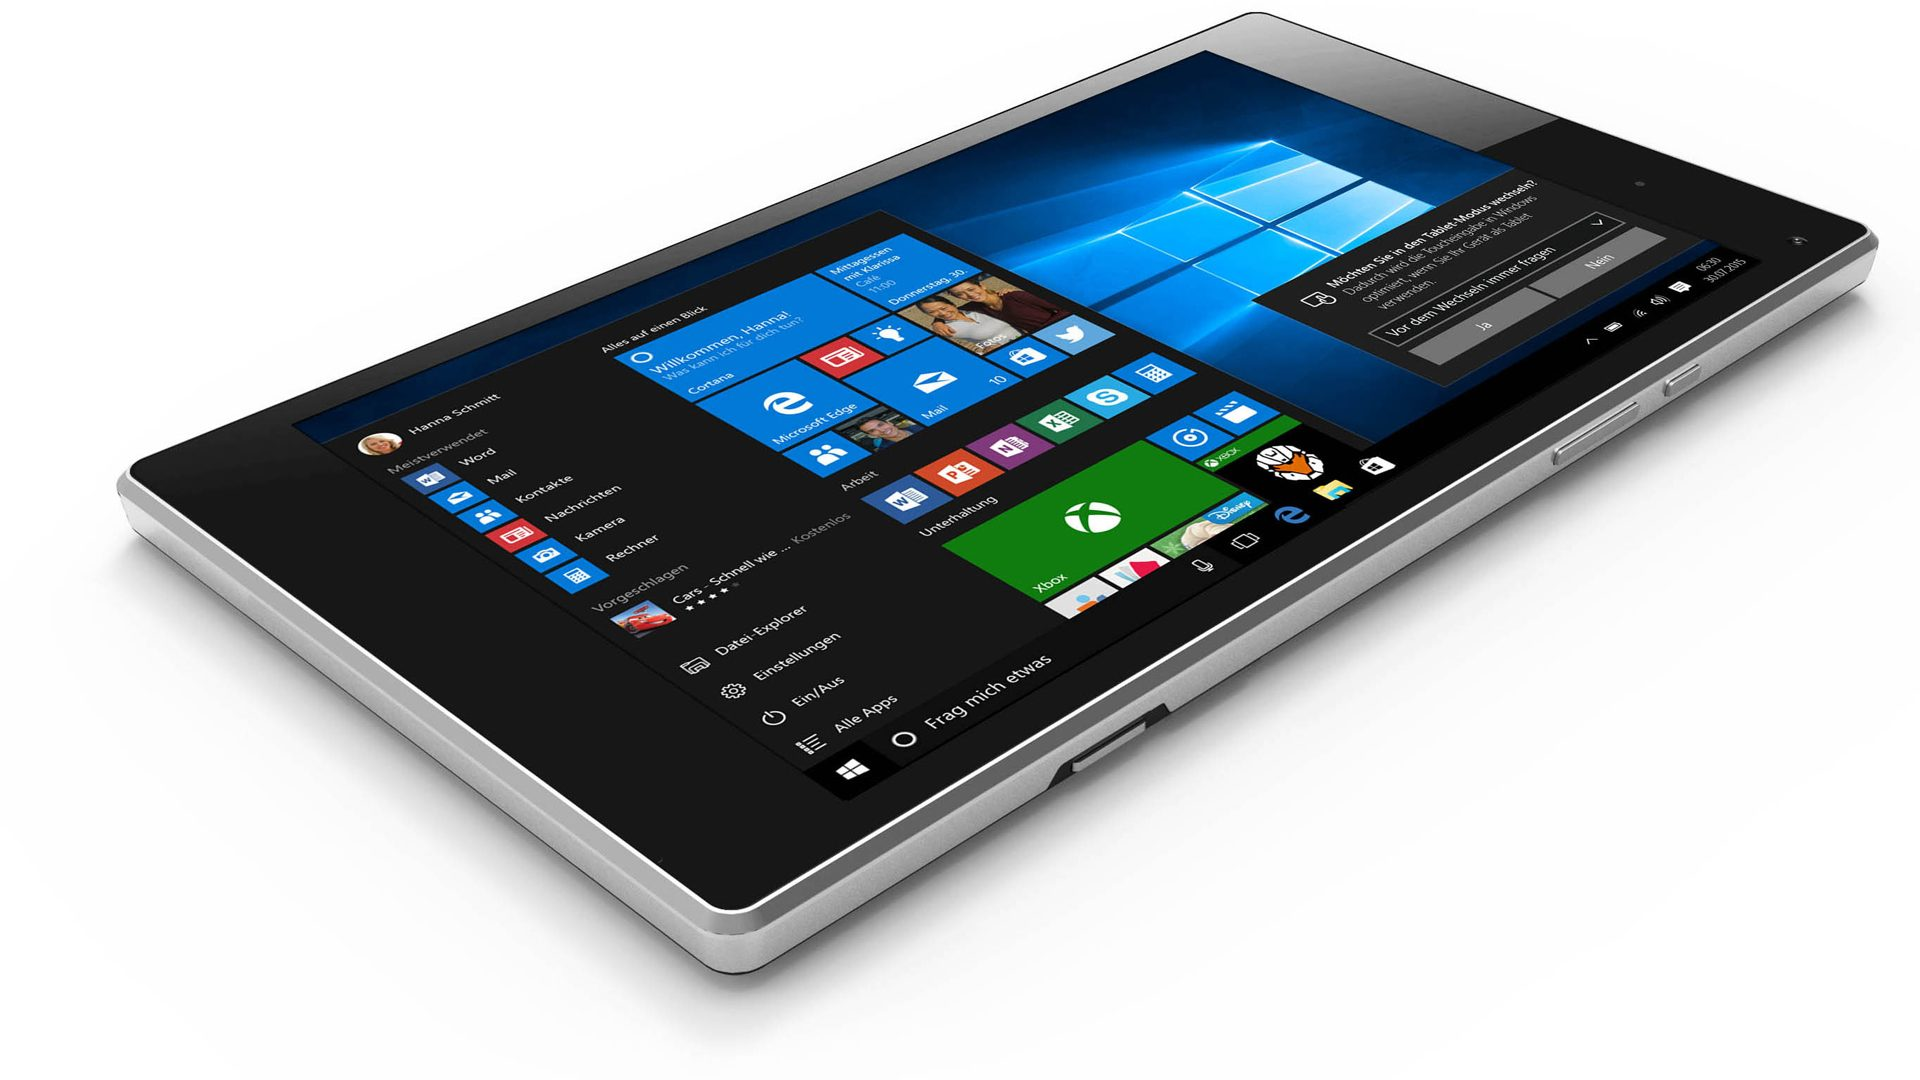 odys-cosmo-windows-x9-tablet-ansichten_6